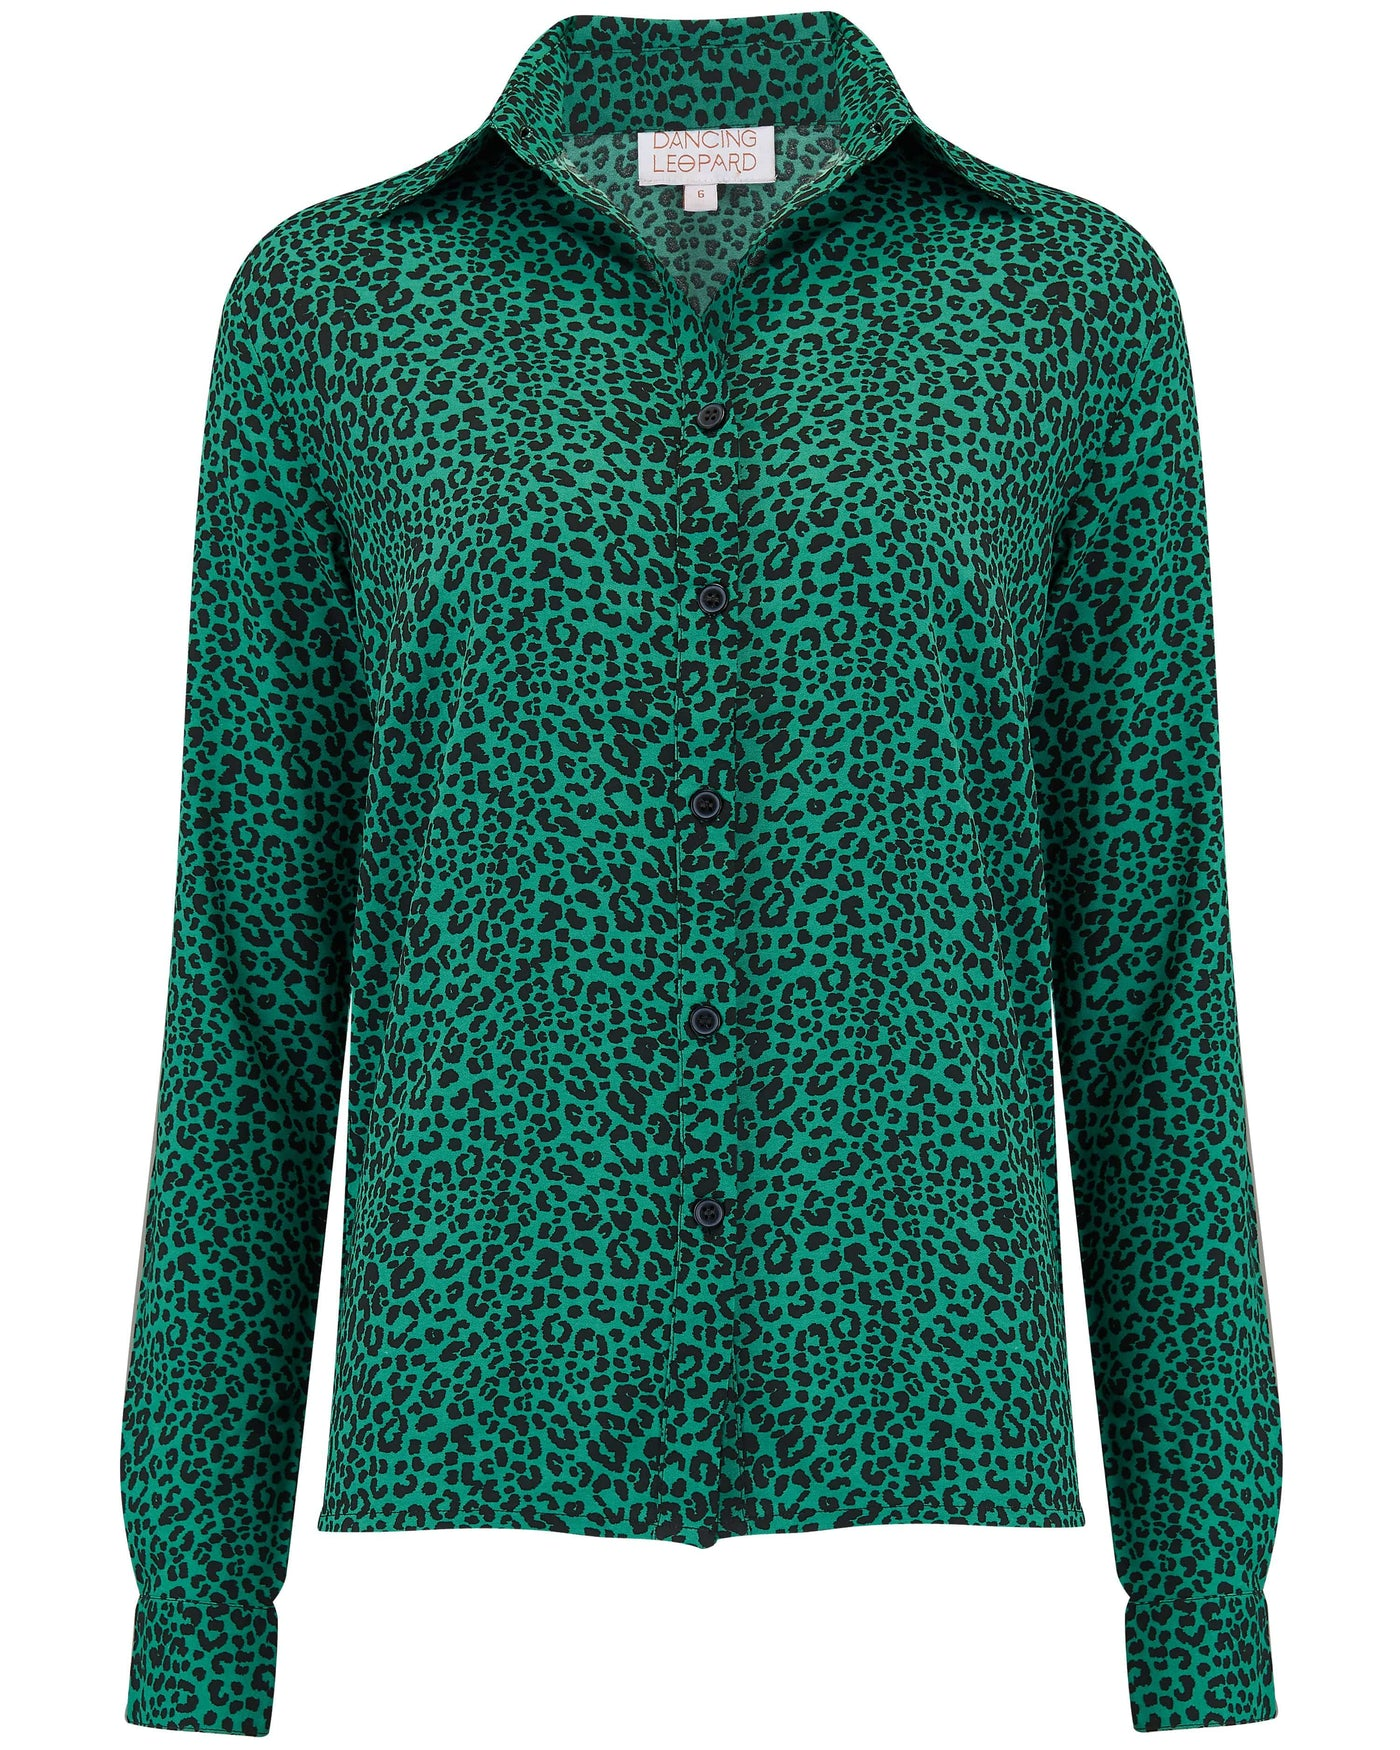 Front view of Dancing Leopard San Diego Shirt in green leopard print on white background